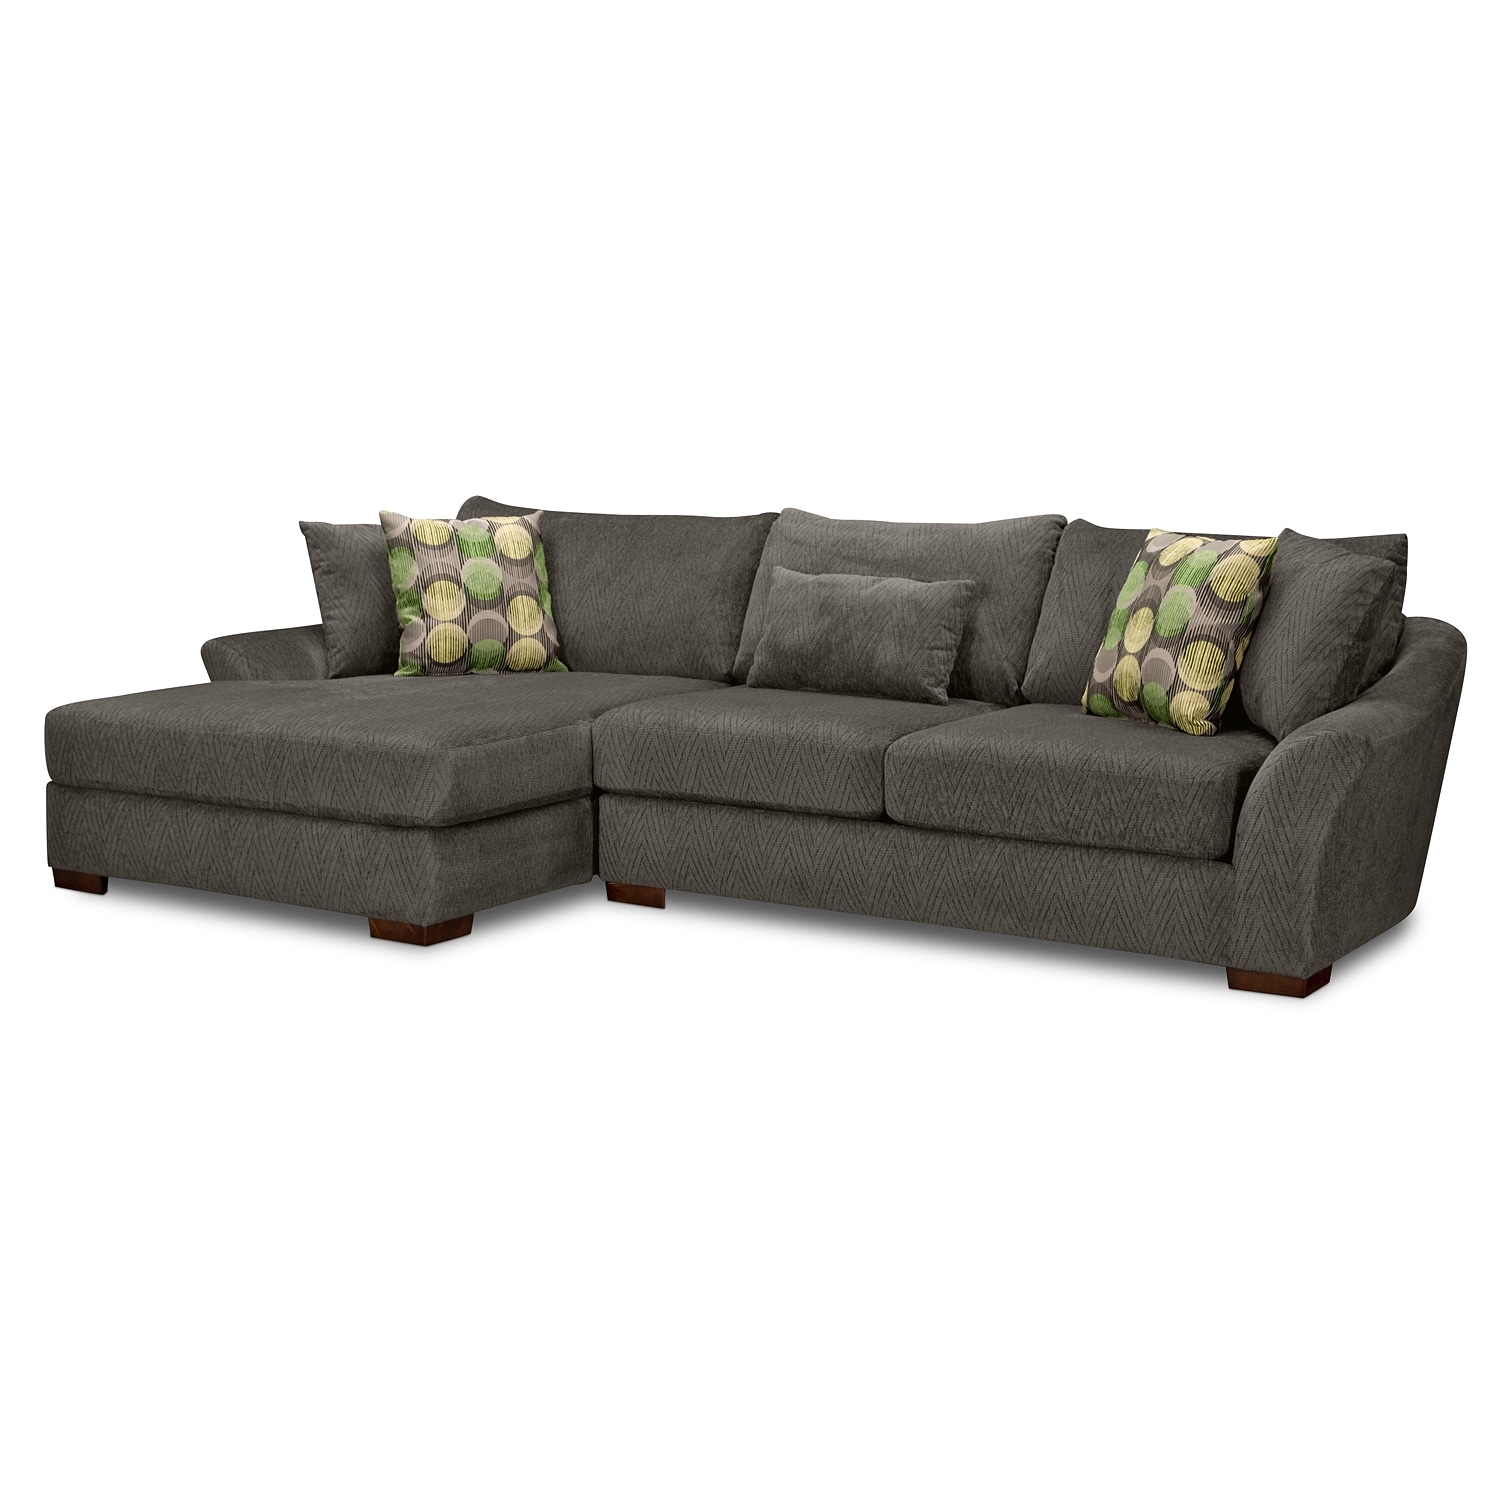 Oasis Upholstery 2 Pc Sectional Value City Furniture